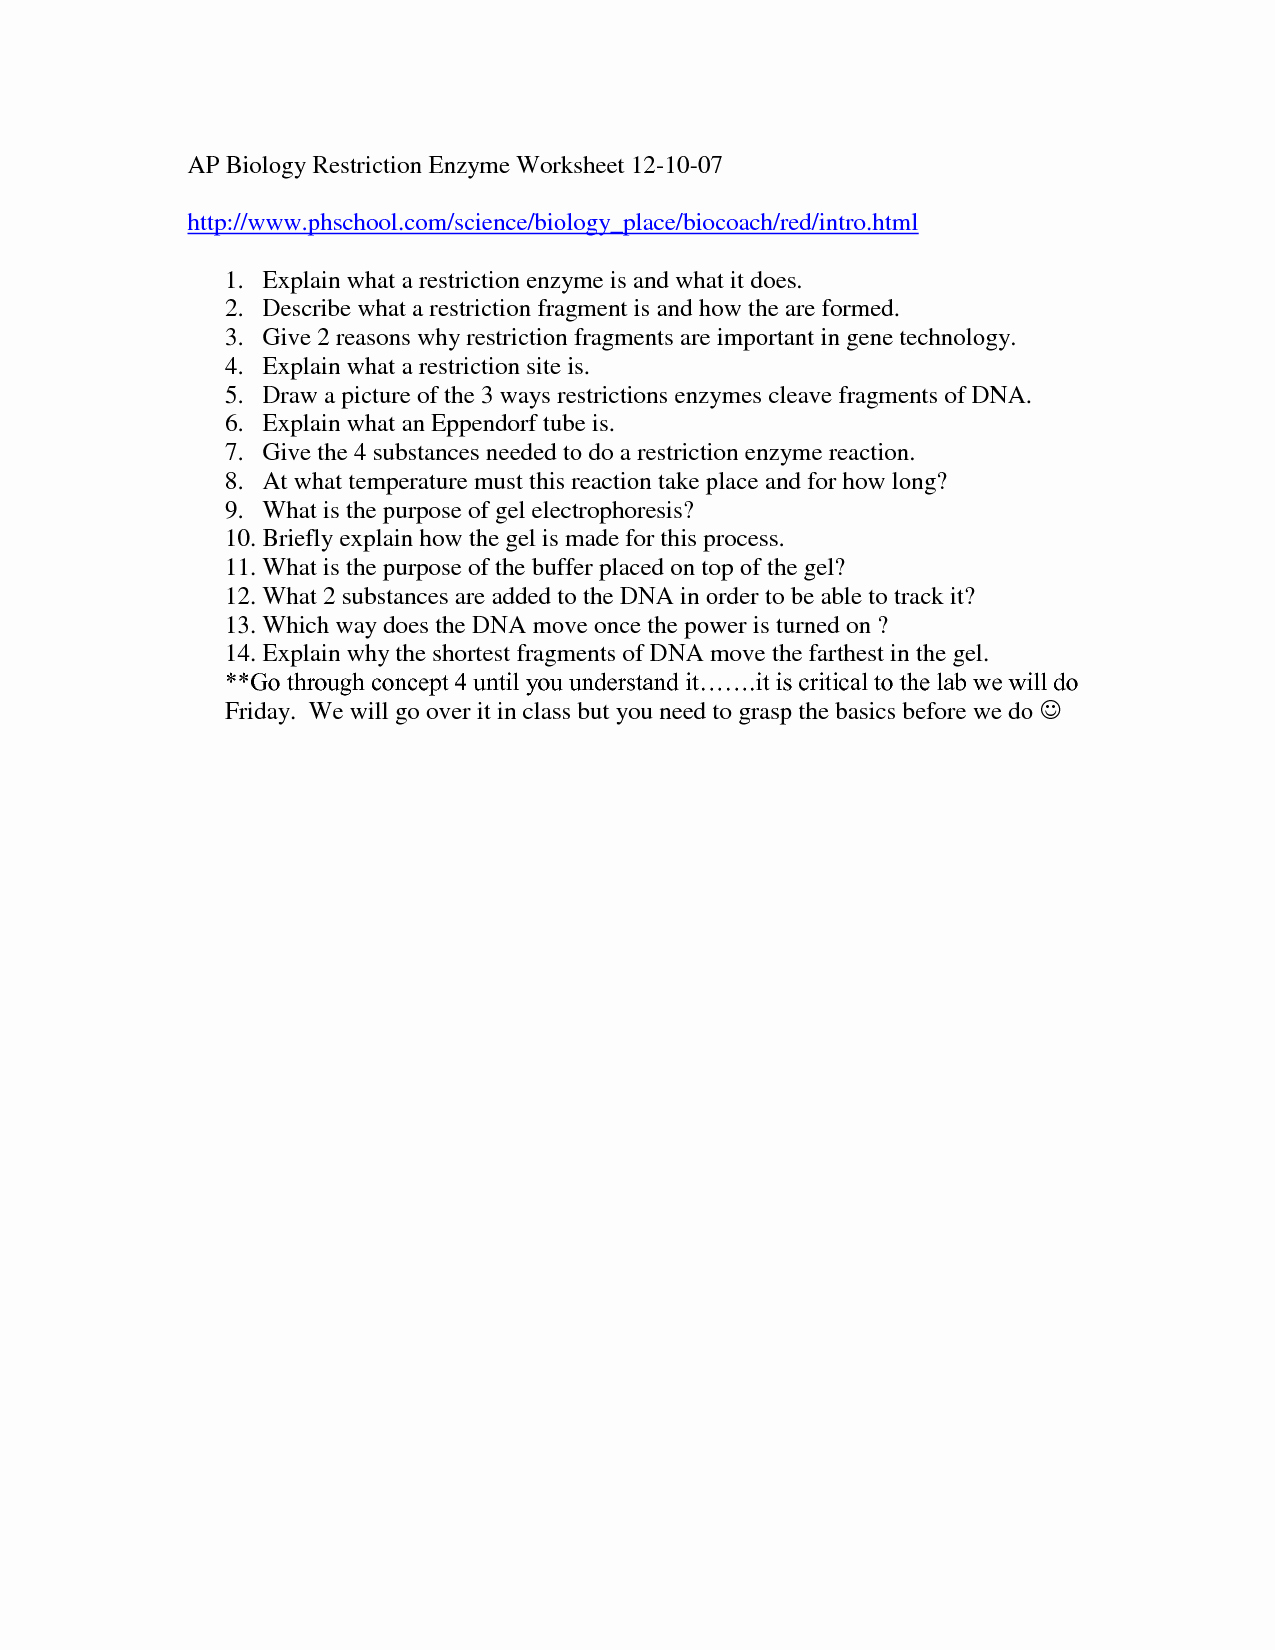 Enzyme Reactions Worksheet Answers Inspirational 14 Best Of Enzymes Worksheet Answer Key Enzymes